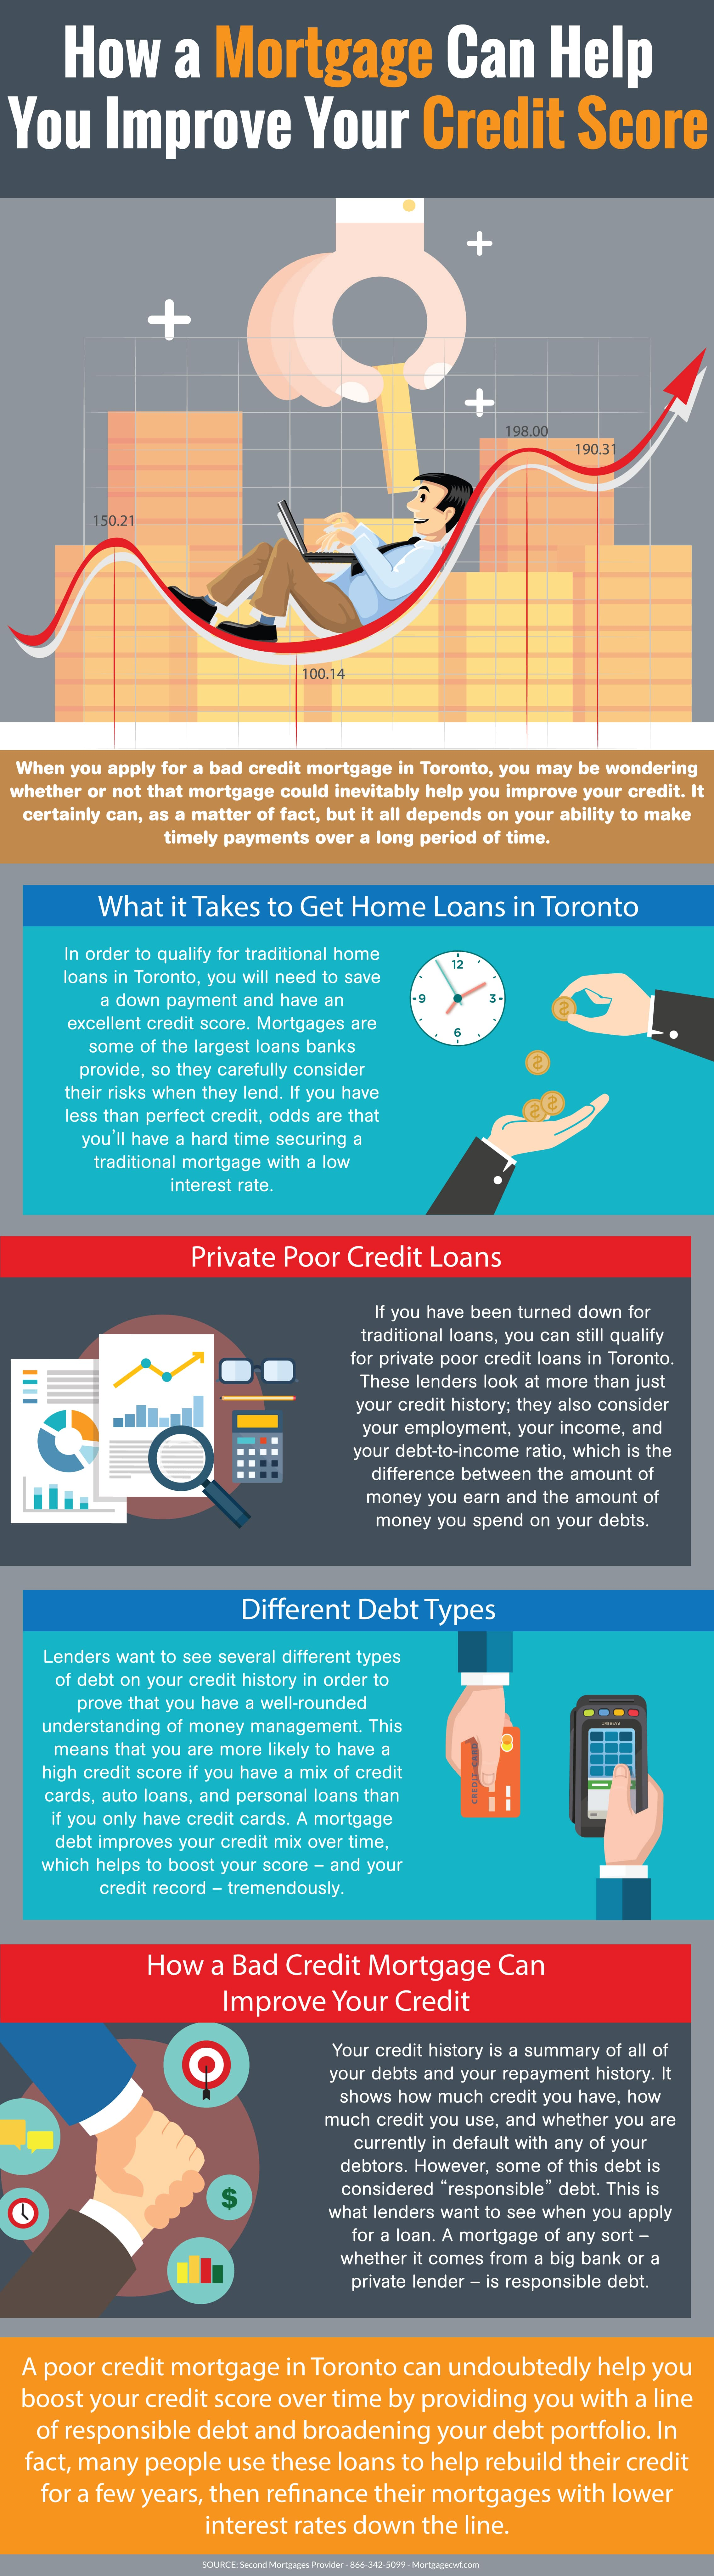 How a Mortgage Can Help You Improve Your Credit Score - Infographic